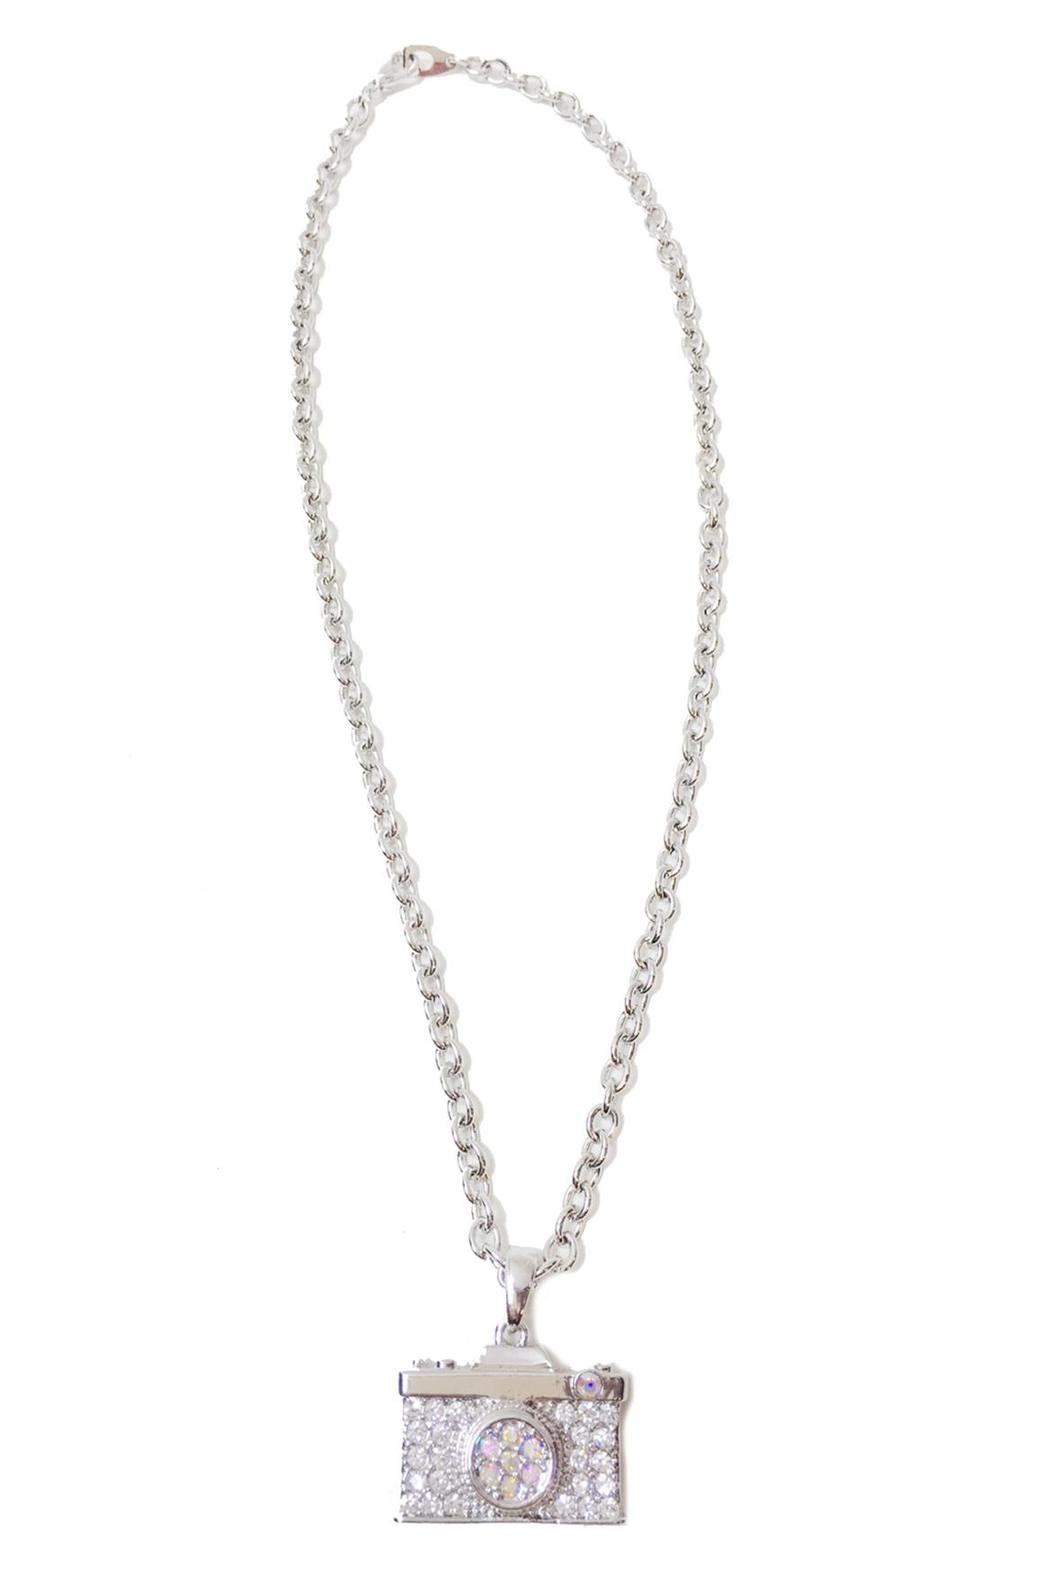 Silver Camera Necklace From Las Vegas By Glam Squad Shop